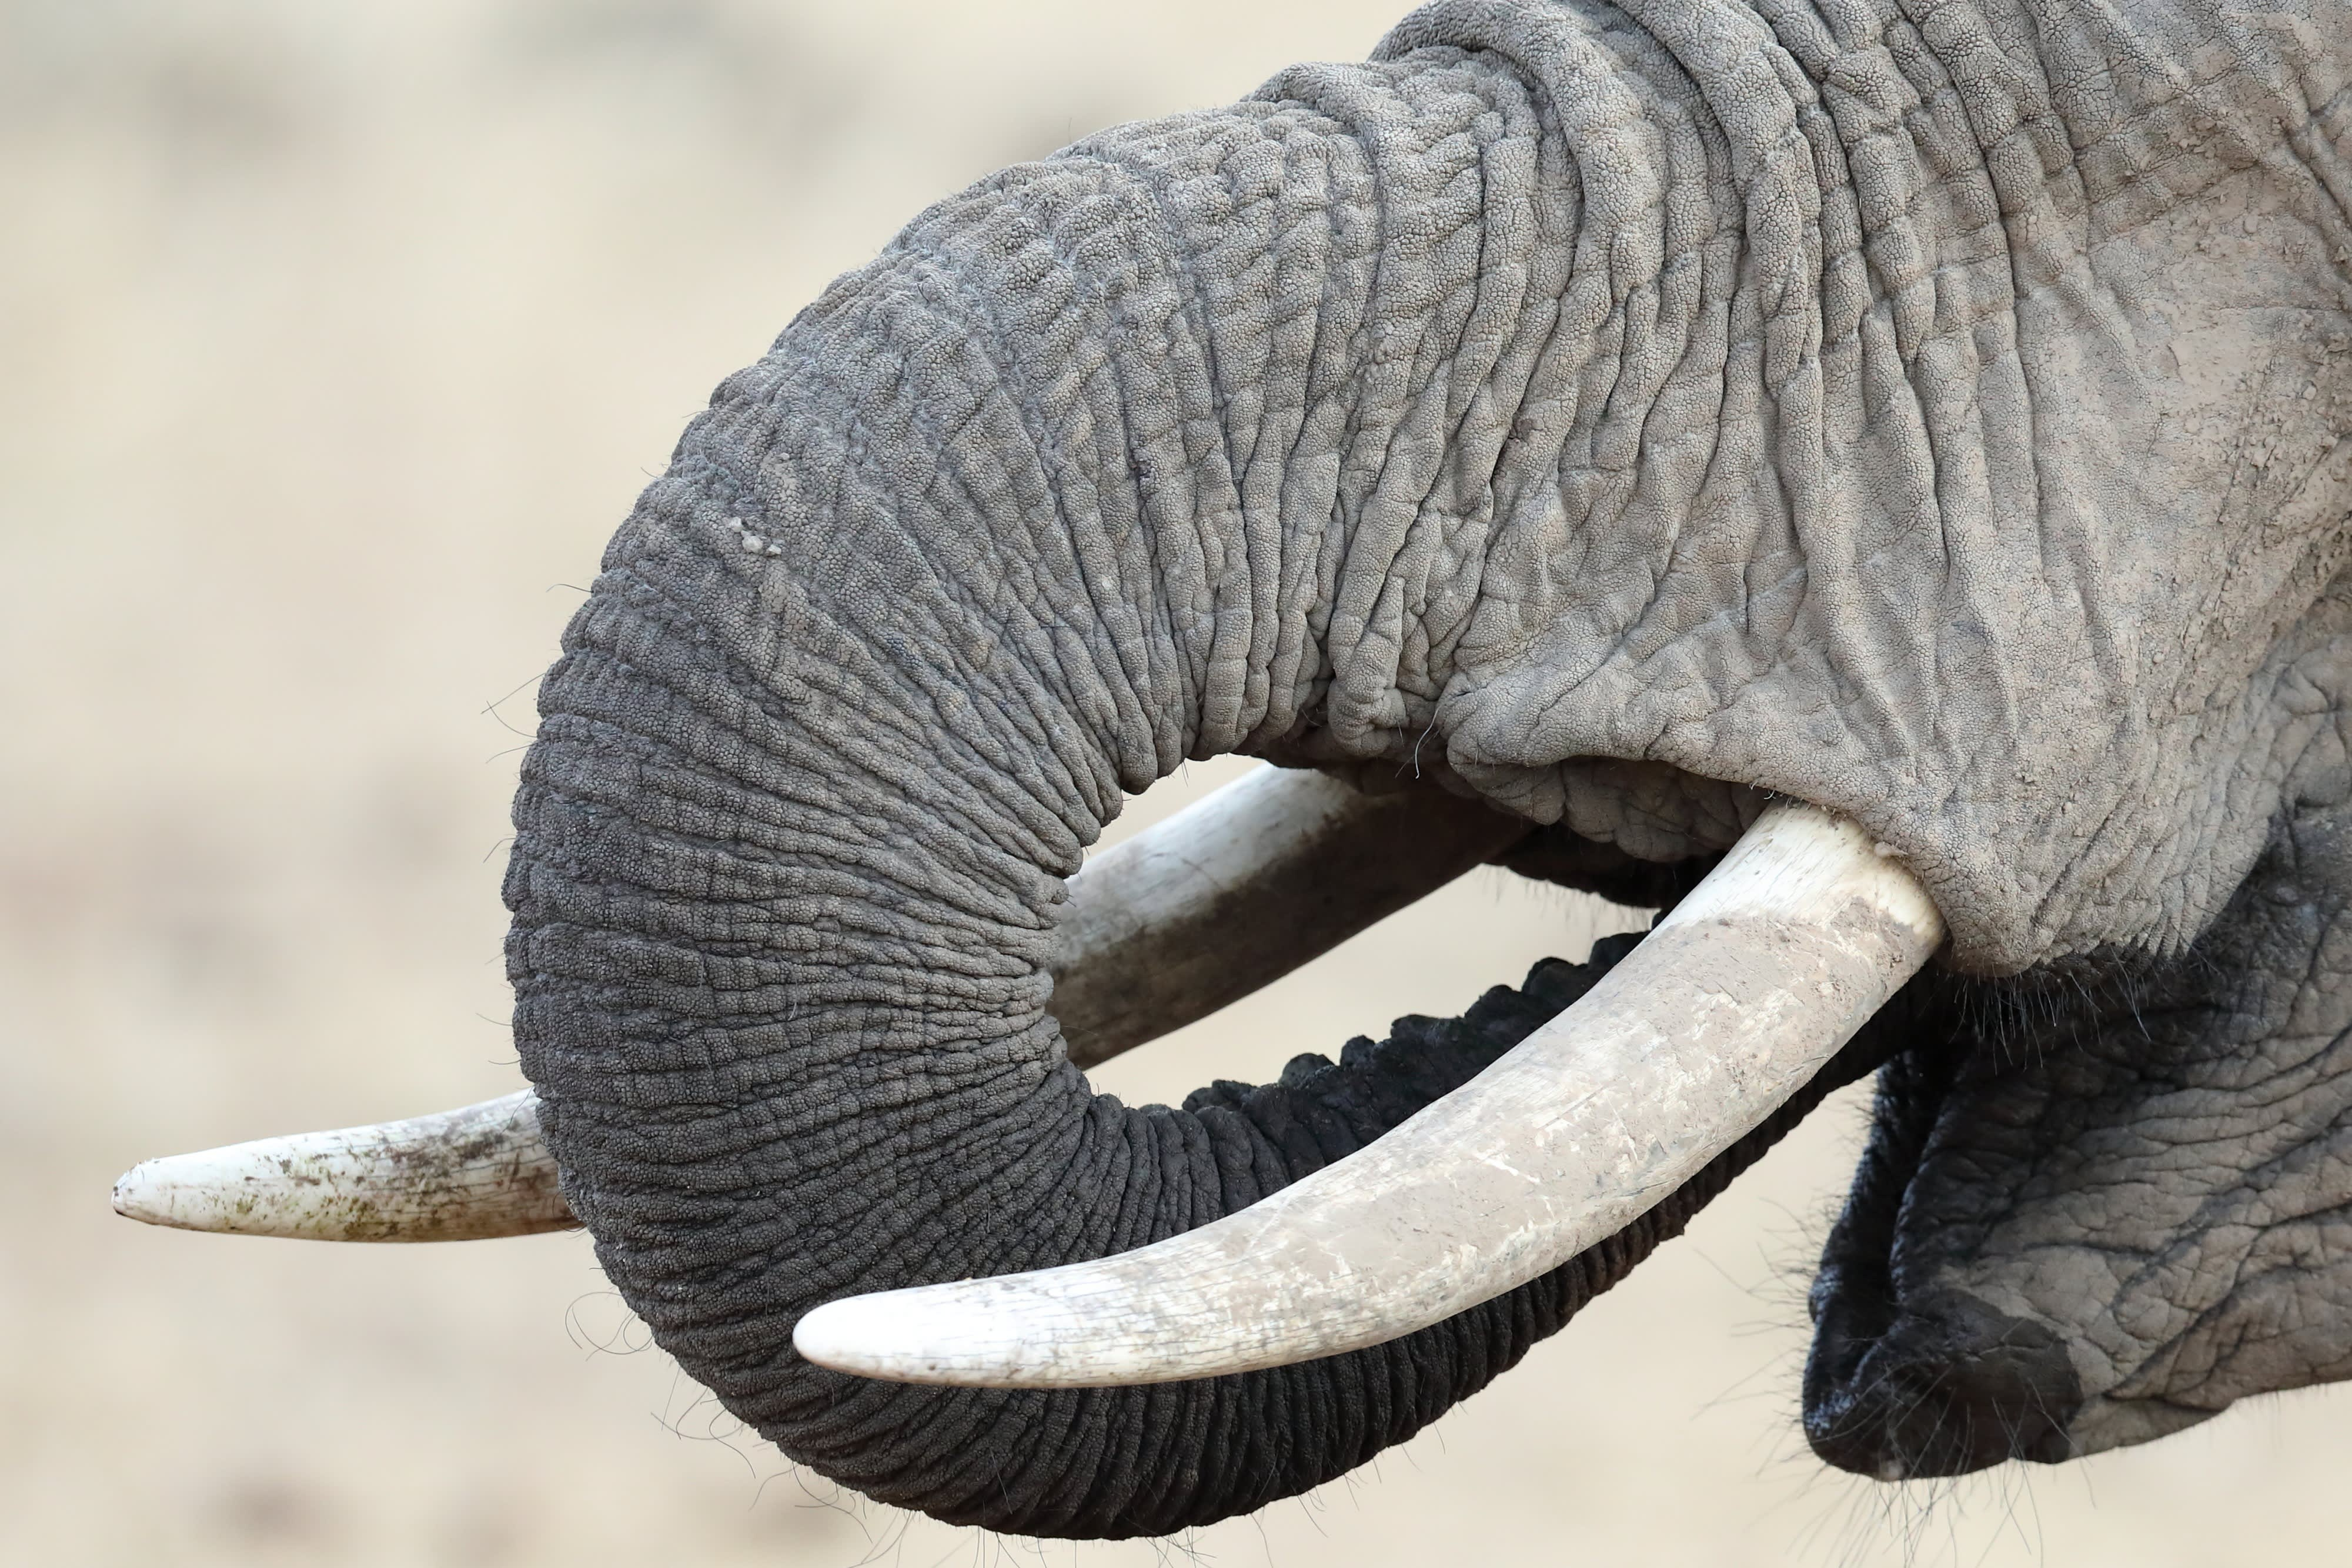 Trunk and tusks in armony